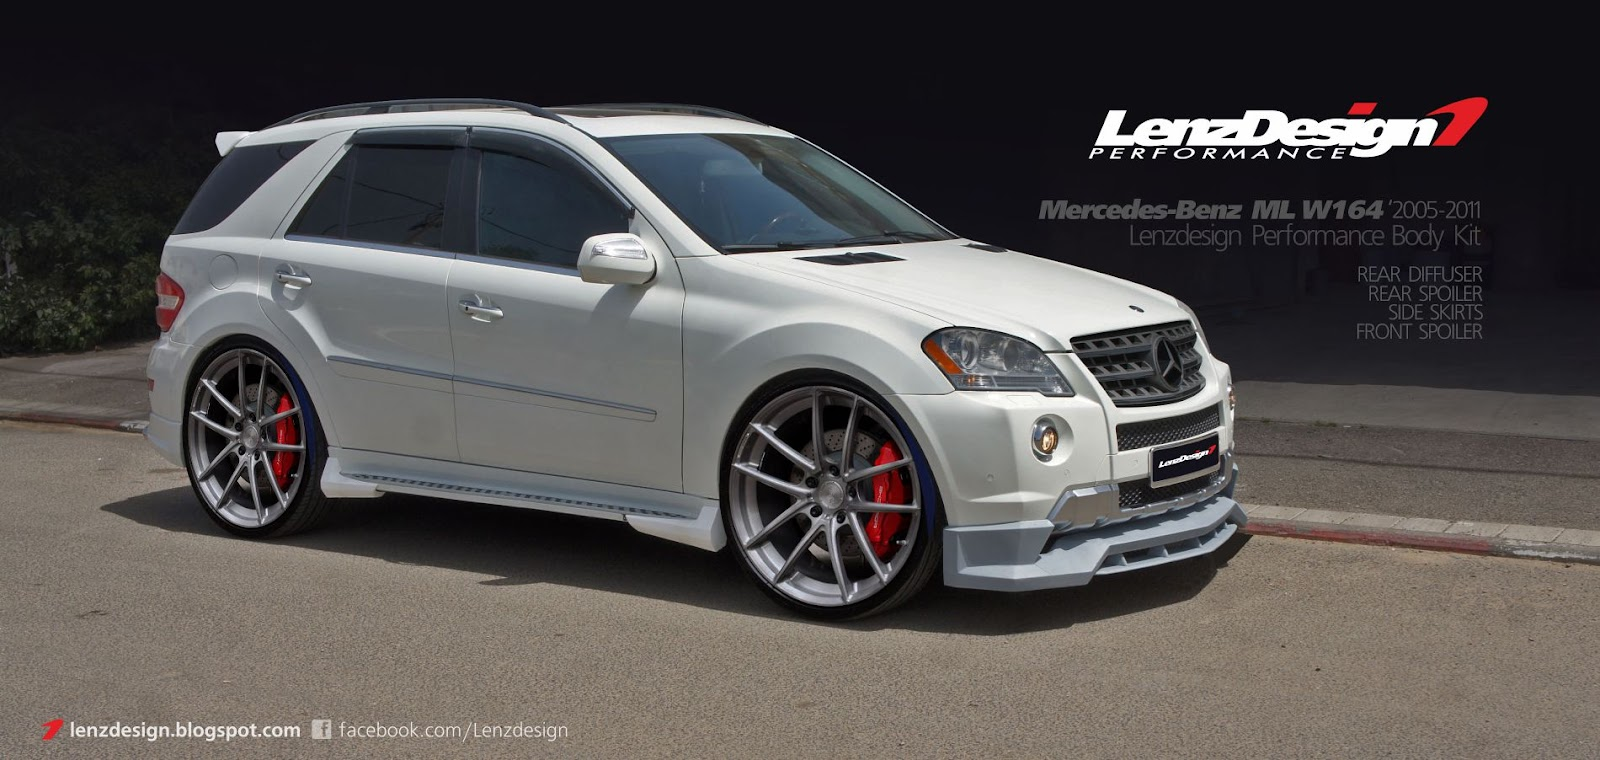 Mercedes Benz Ml W164 Tuning Wide Body Kit Lenzdesign